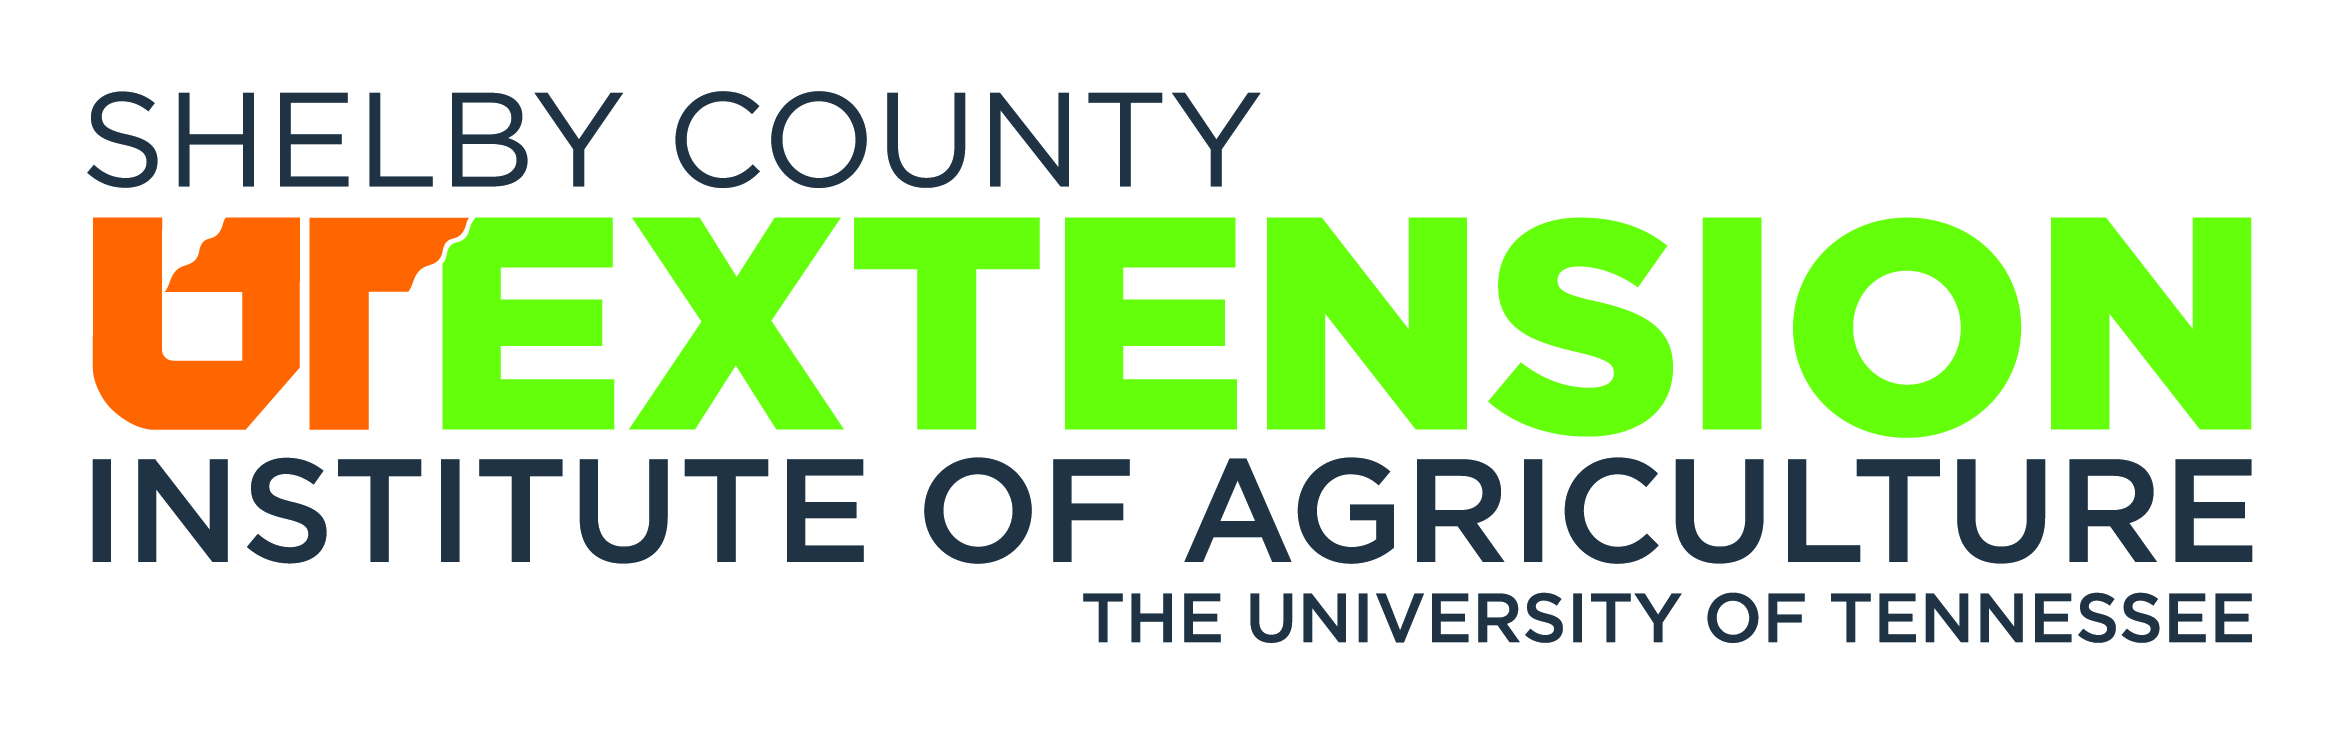 UT Extension Logo.jpg